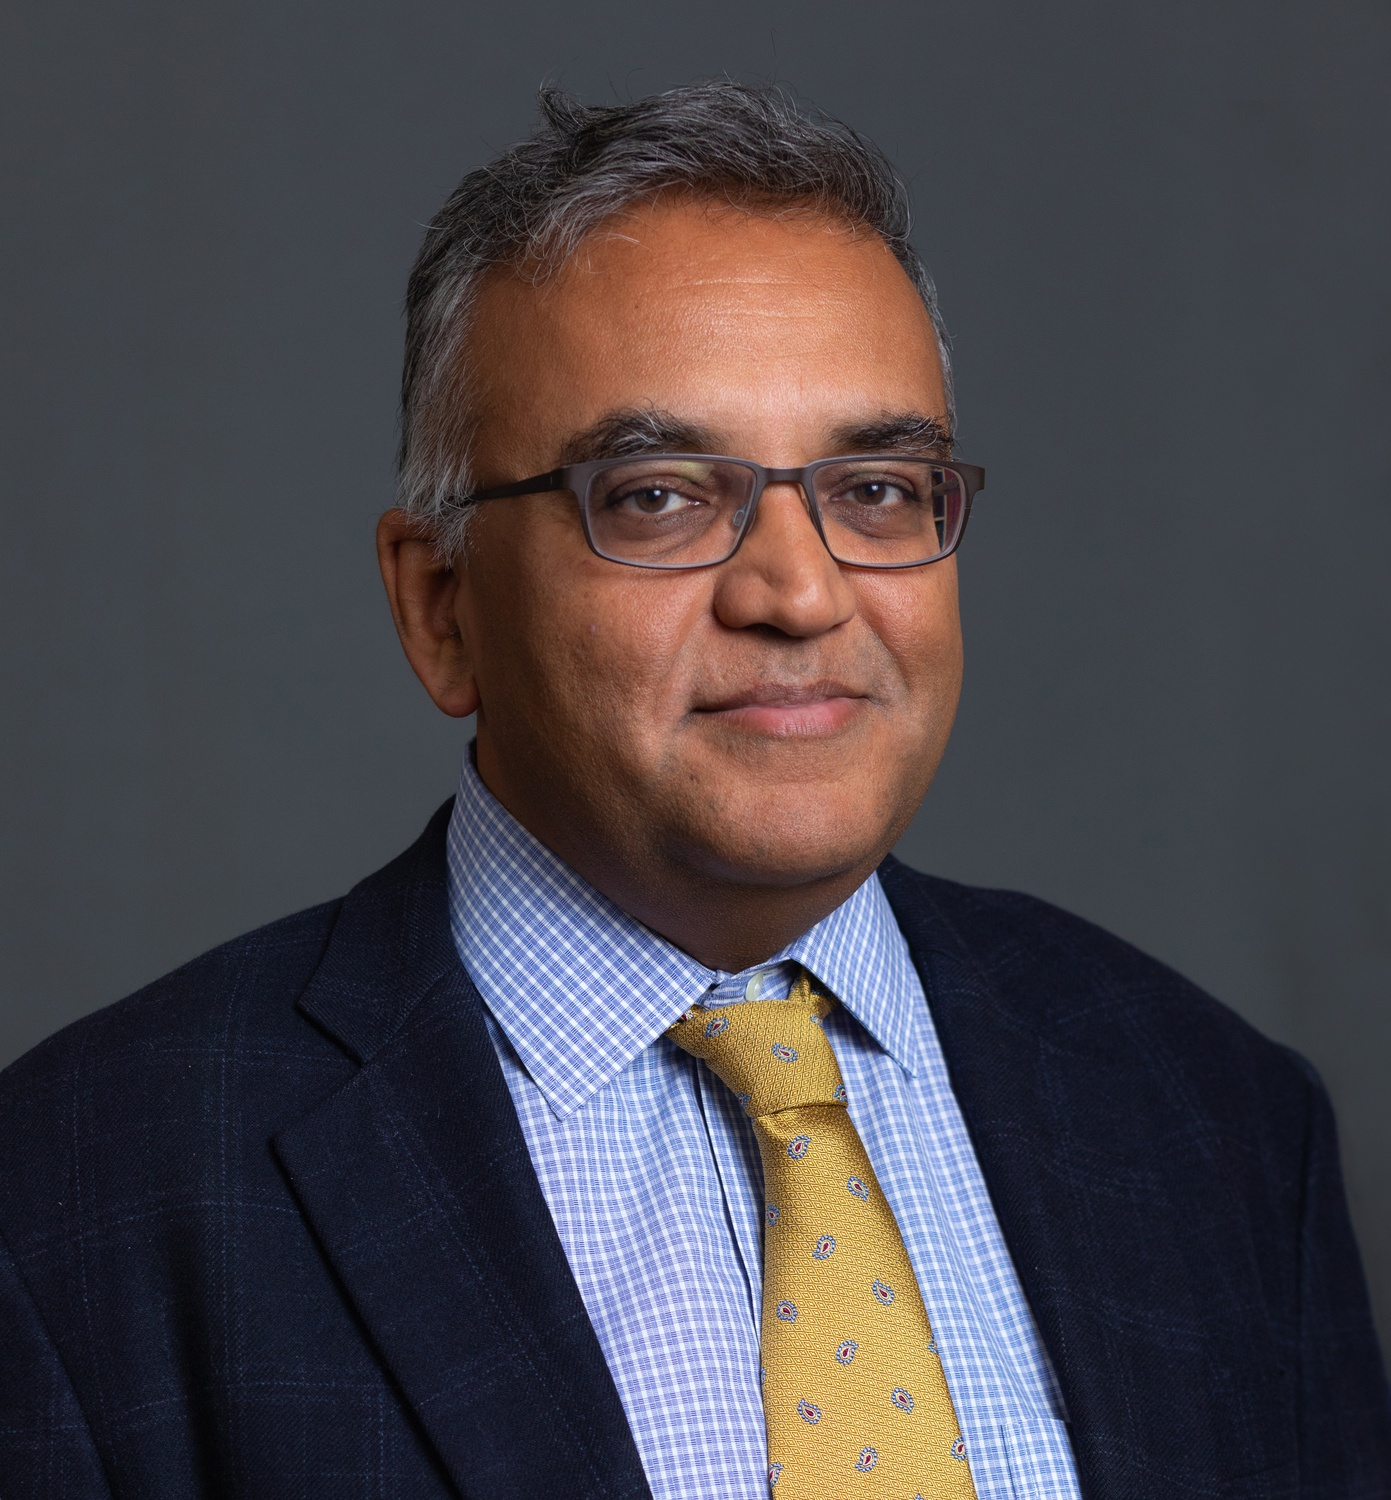 Ashish K. Jha is the Director of the Harvard Global Health Institute, the K.T. Li Professor of Health Policy at the Harvard T.H. Chan School of Public Health, and a Professor of Medicine at Harvard Medical School.